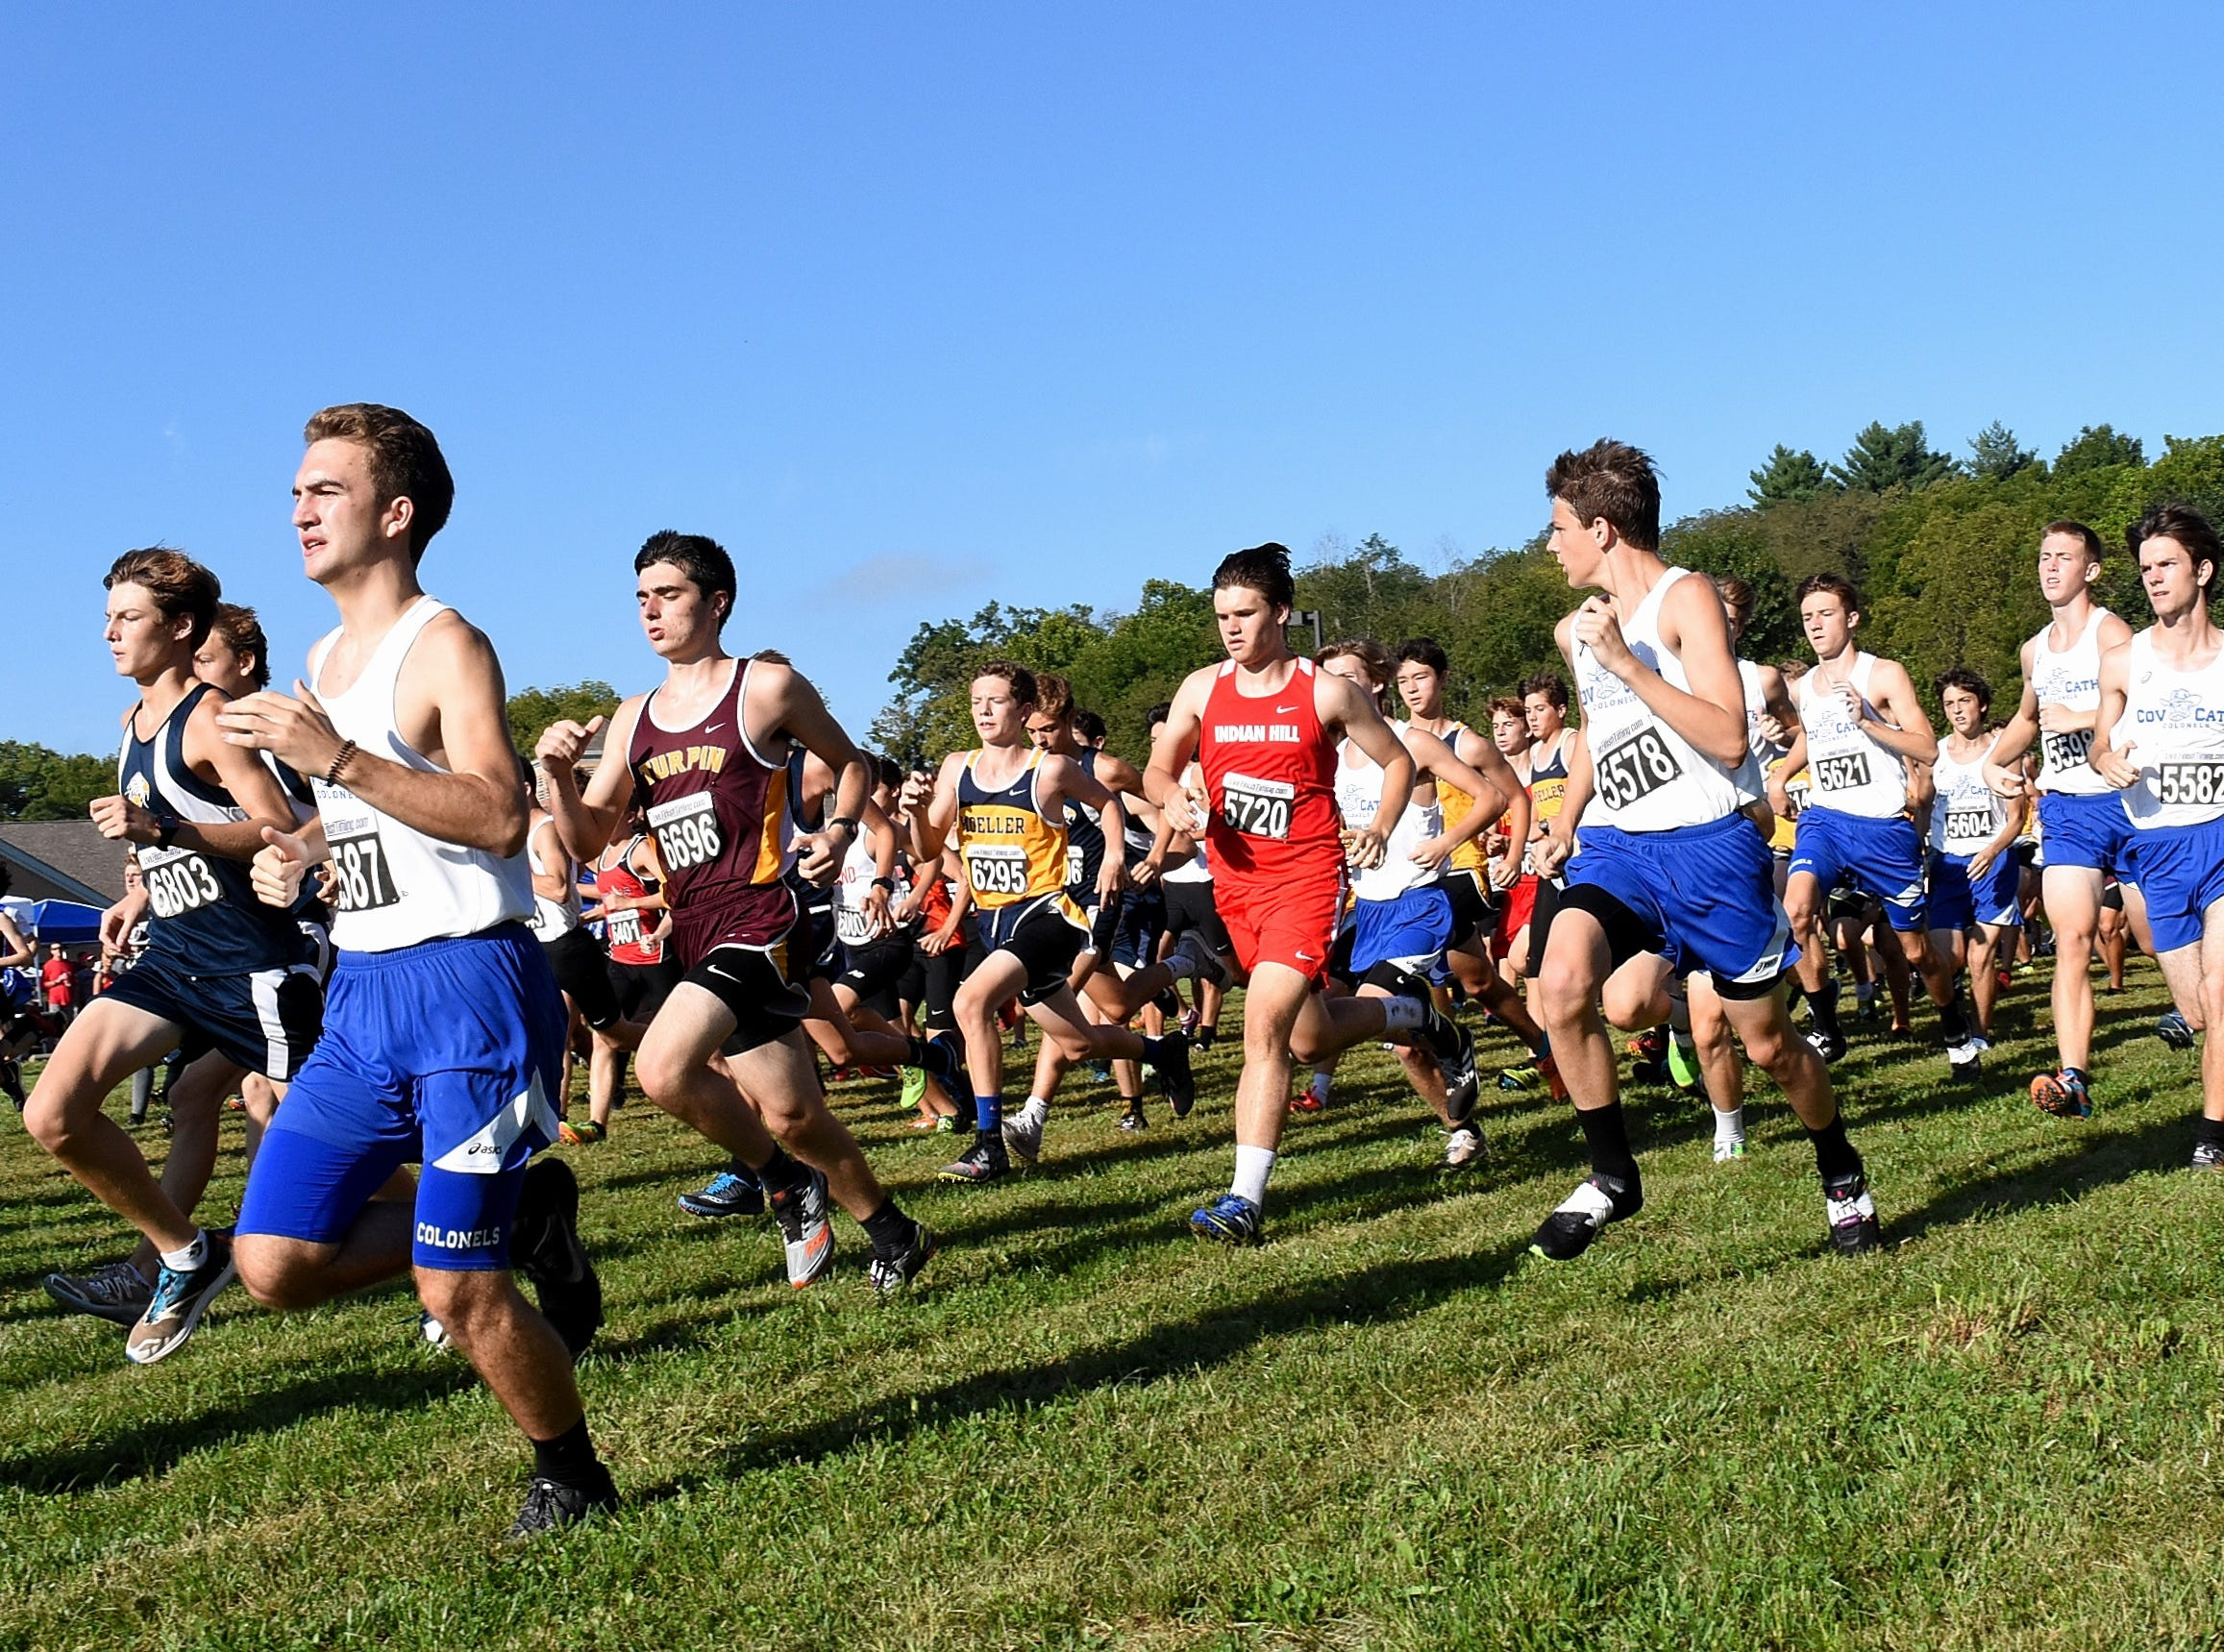 The fellas take the trail in the boys 5K Open at the 2018 Milford Cross Country Invitational, Sept. 15, 2018.